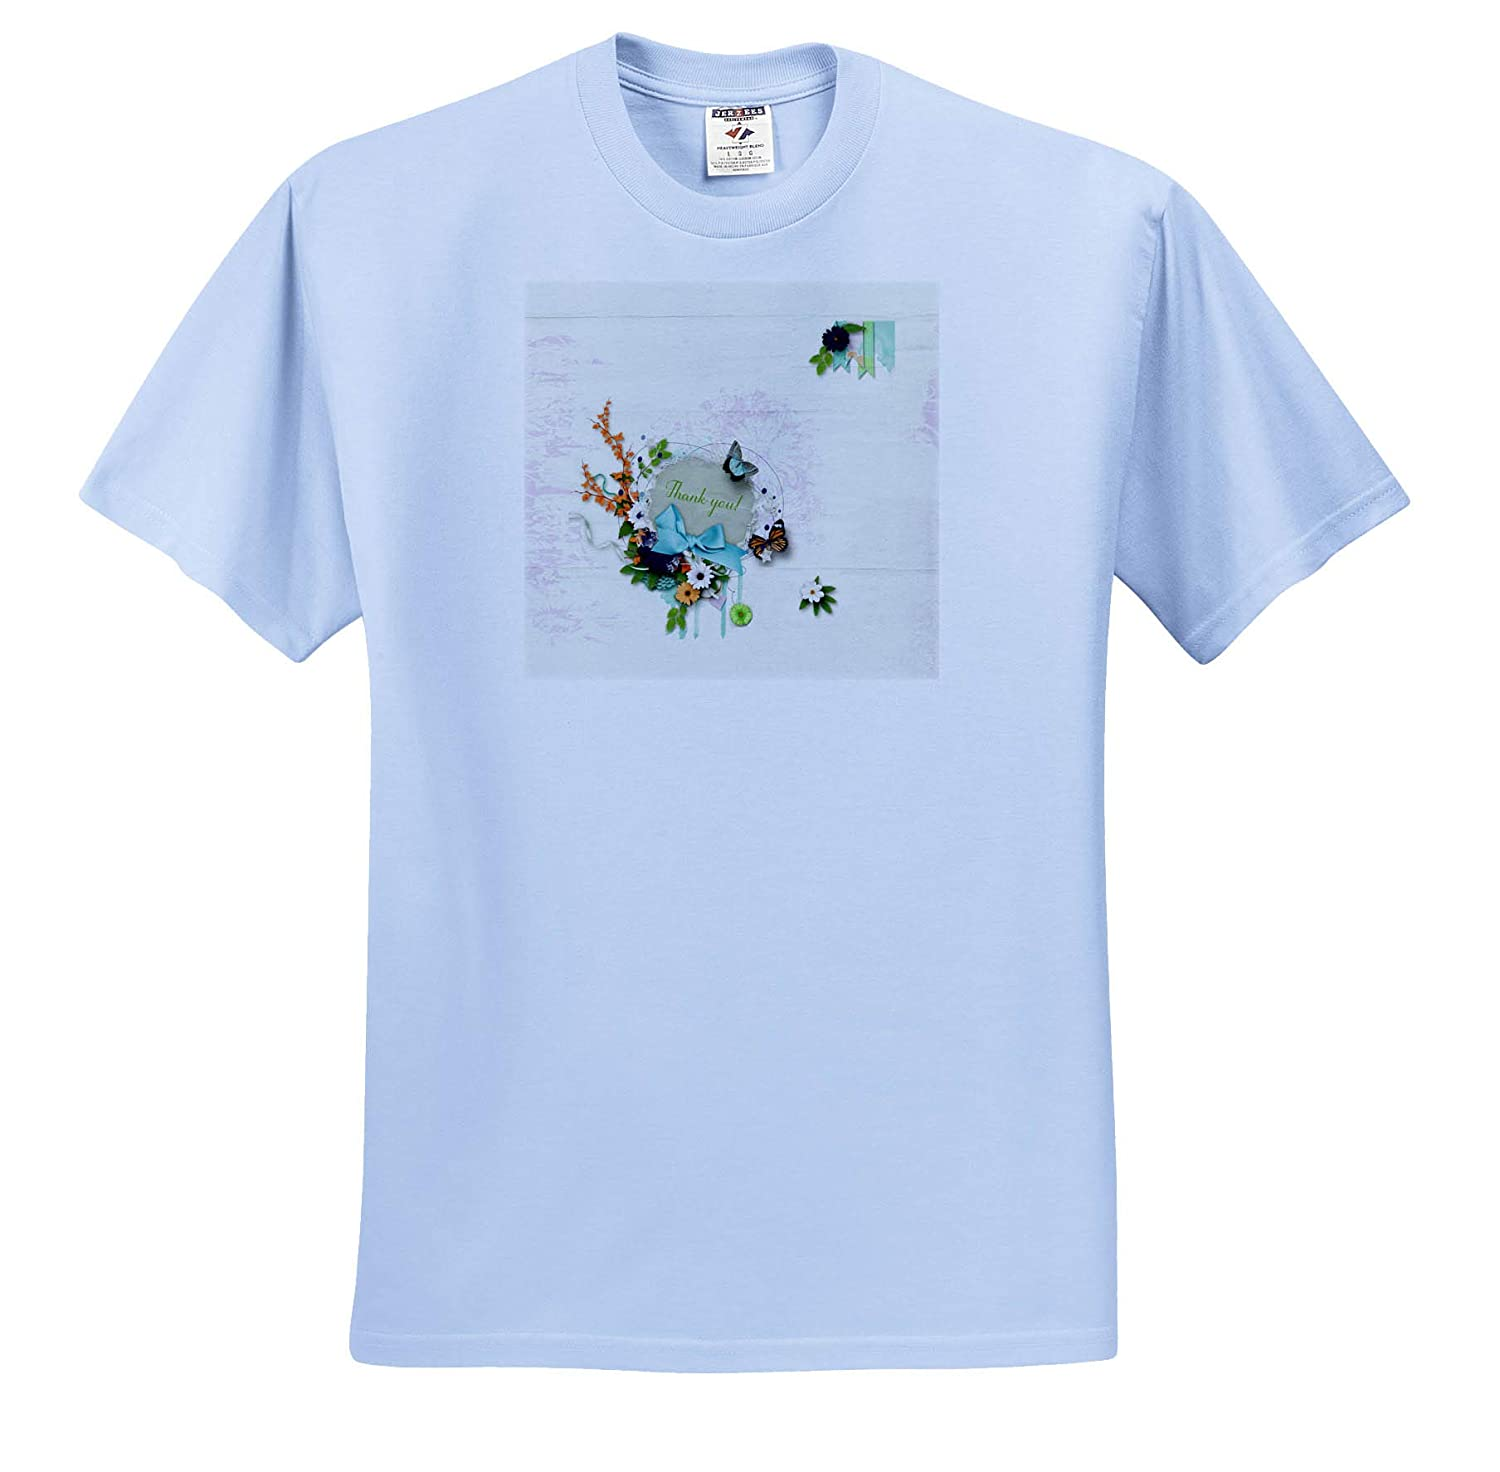 3dRose Beverly Turner Thank You Design Bow Image of Thank You Oval Frame of Flowers and Butterflies T-Shirts